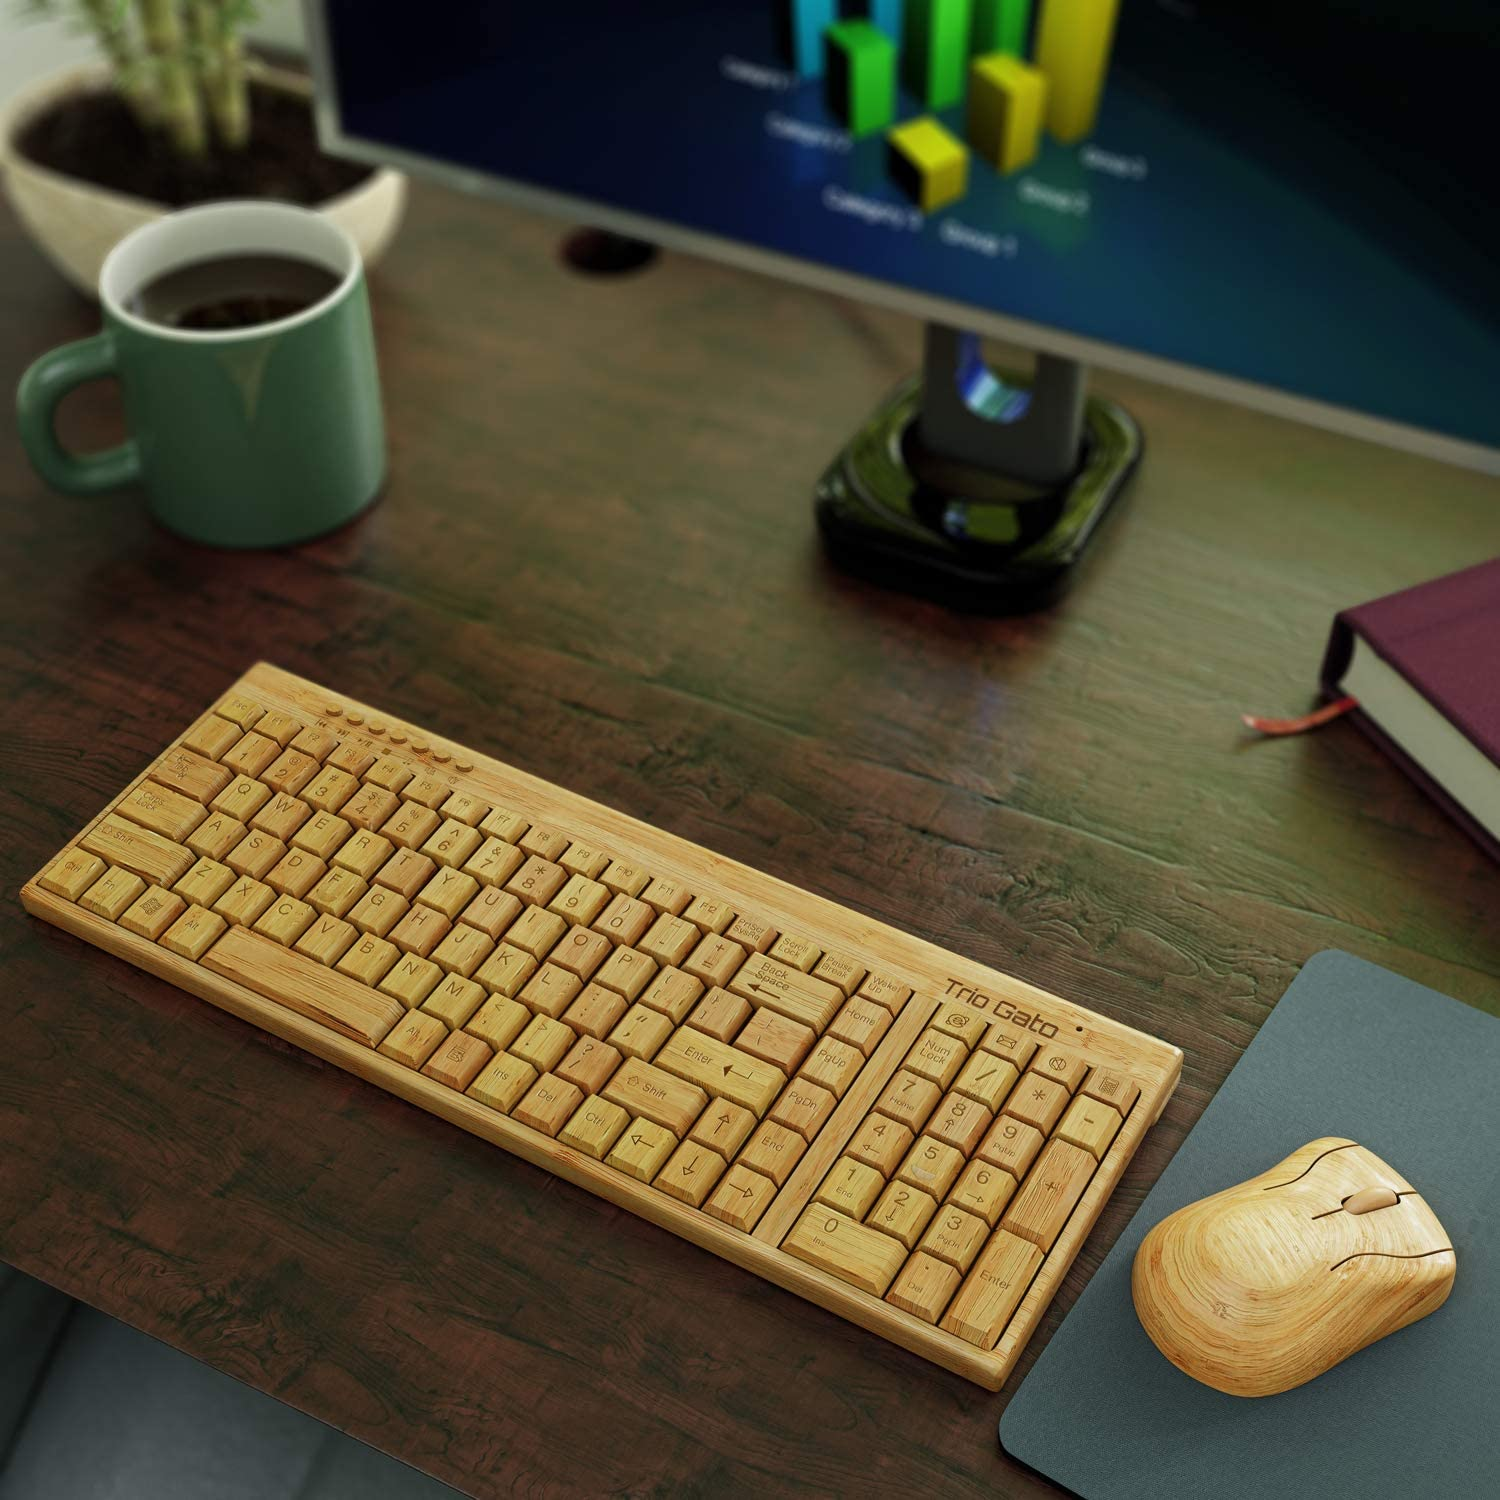 Wireless Bamboo Bluetooth Keyboard and Mouse – Natural, Handmade, Eco-Friendly Mouse and Keyboard – 96-Key Compact Cordless Keyboard and 3-Button Mouse with Scroll Wheel Includes Wood Pen by Trio Gato